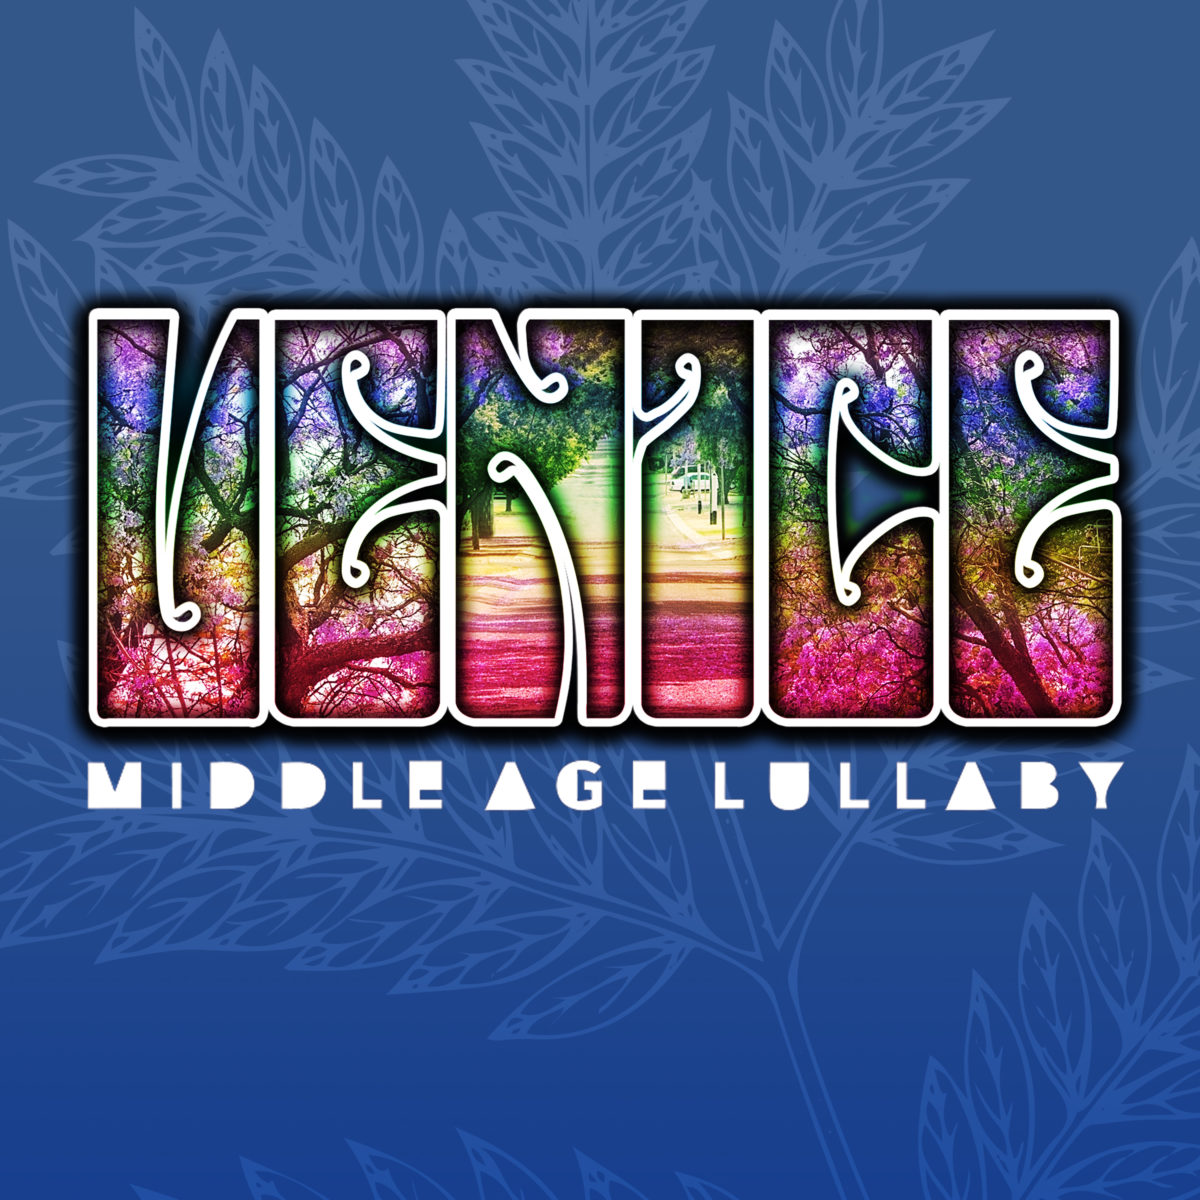 VENICE Releases New Single 'Middle age Lulla...